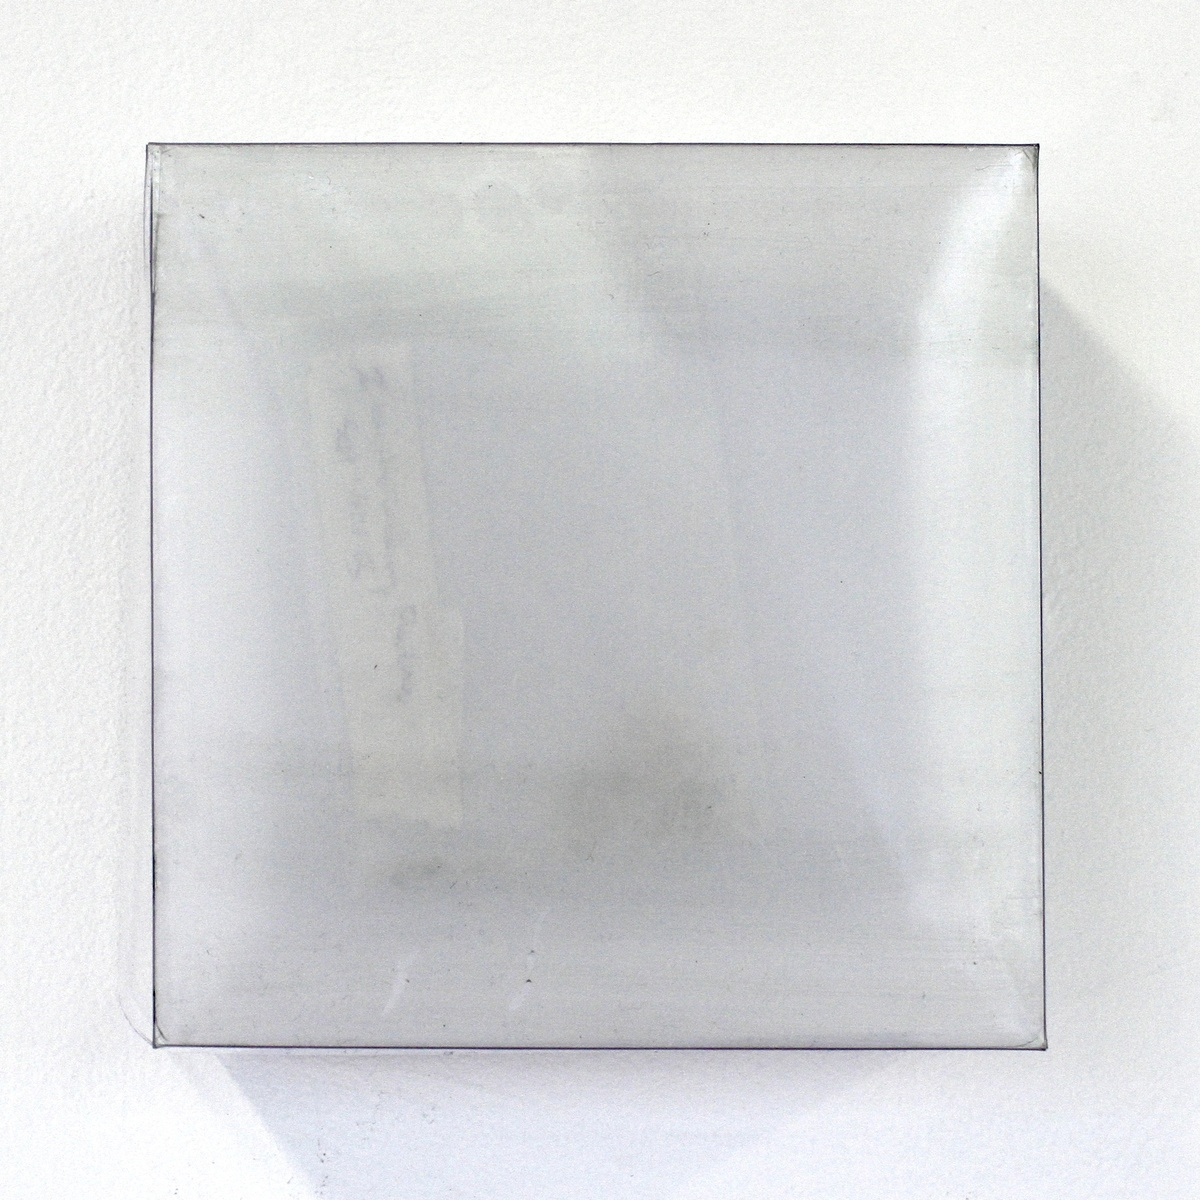 "acrylic sheet, object, oil on board 6"" x 6"" 2015  © Meaghan Barry"